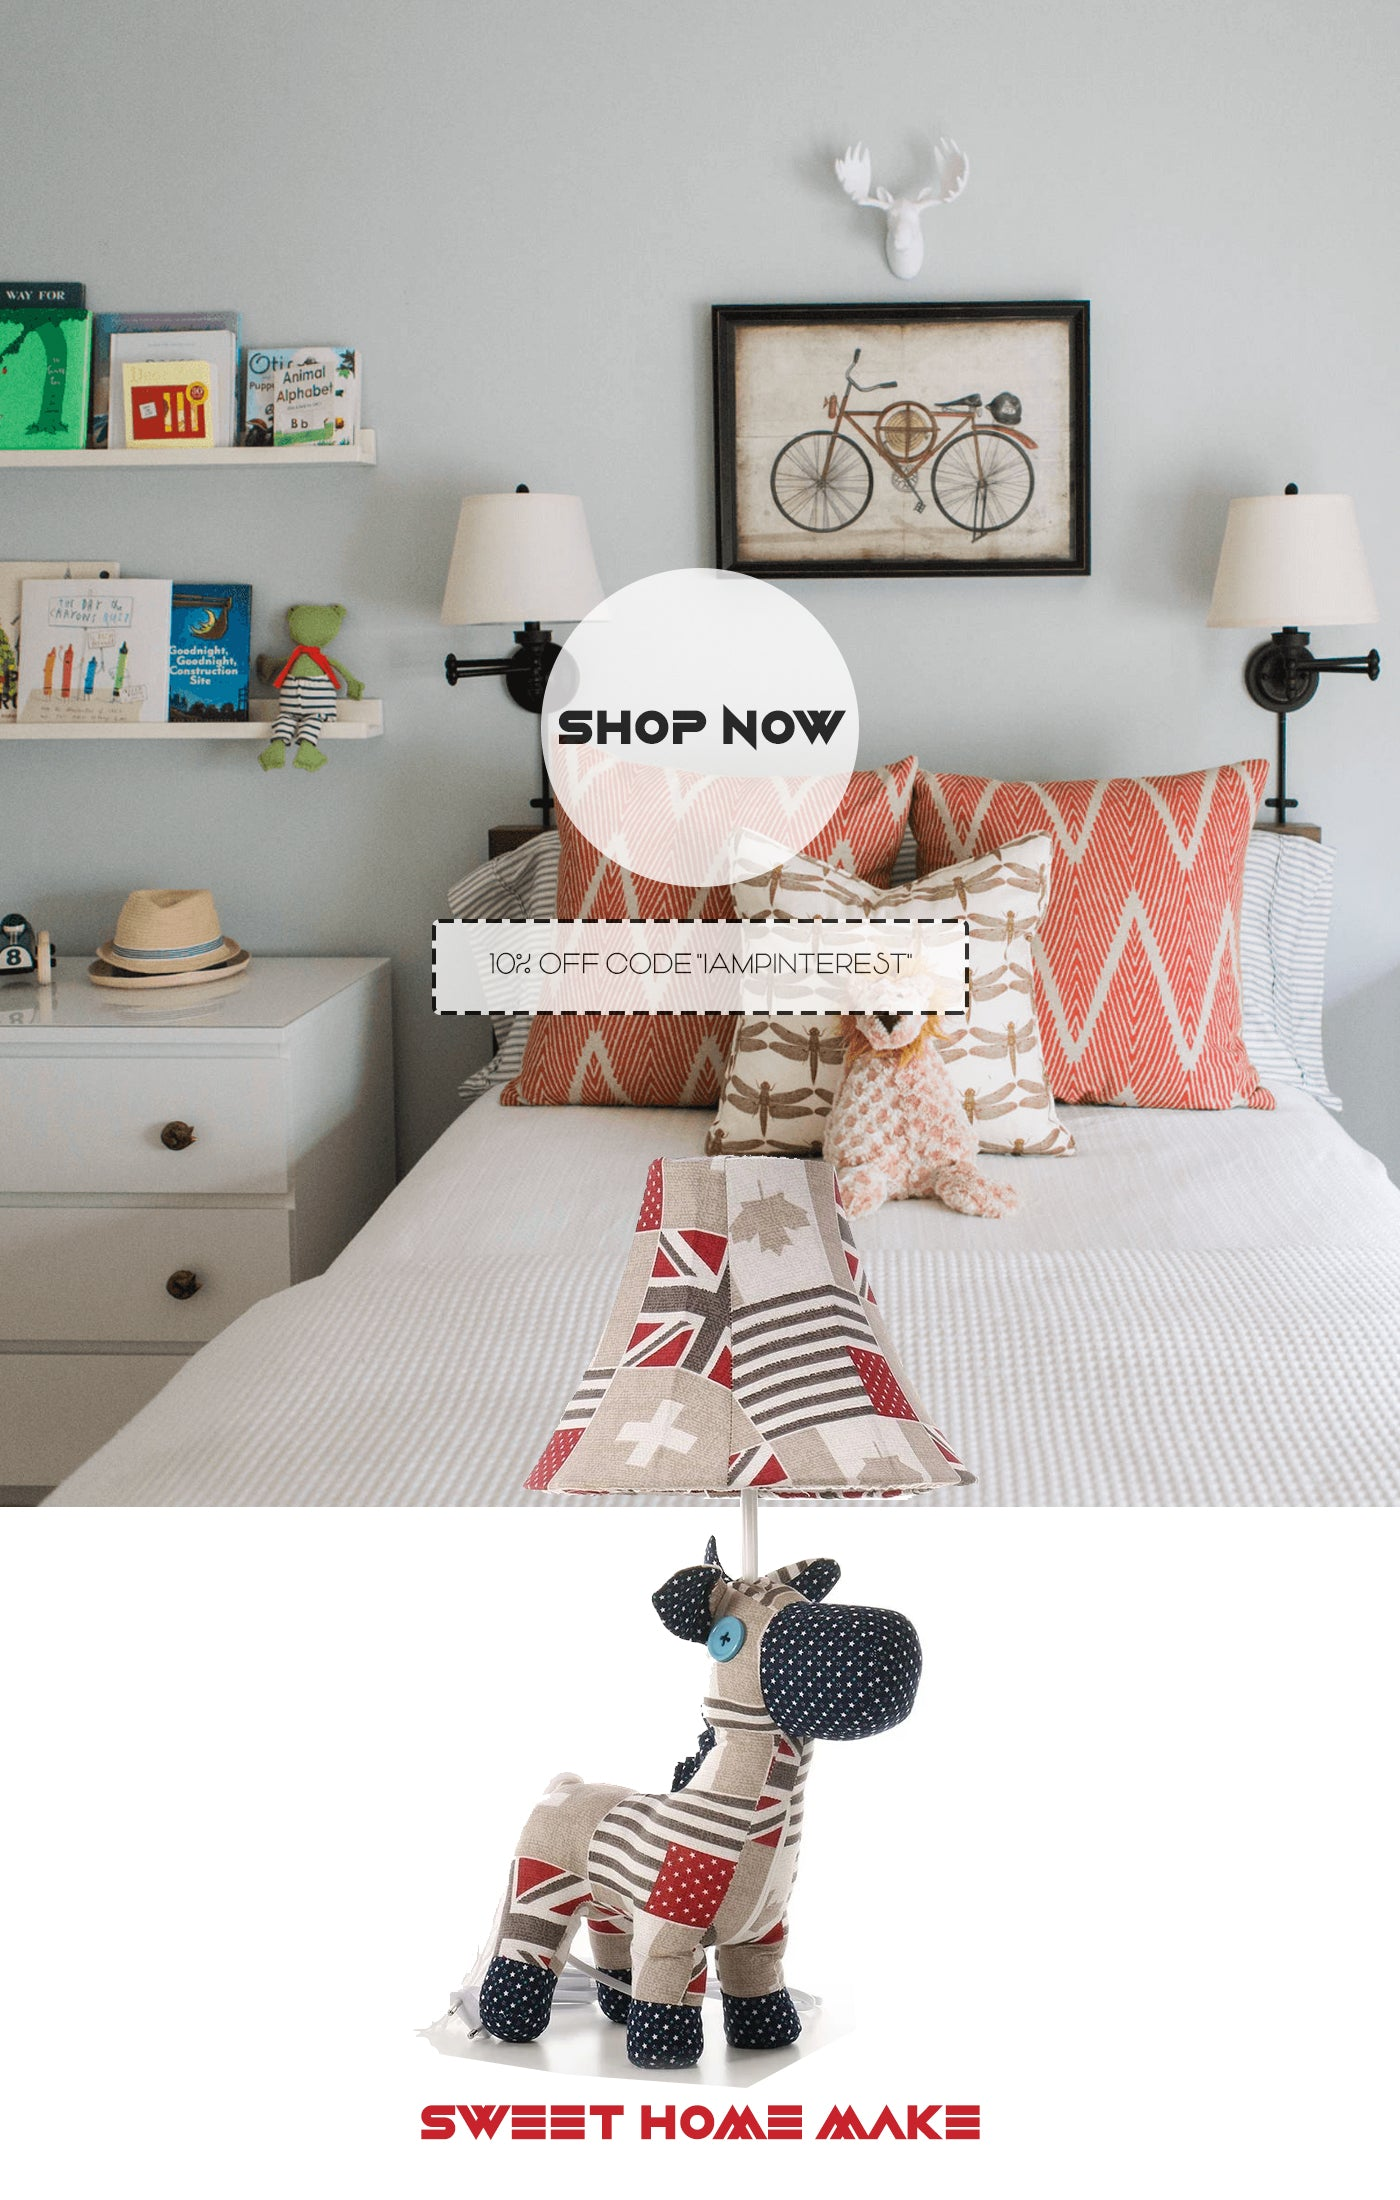 Horse For Kids Decor with Table Lamp and Toy